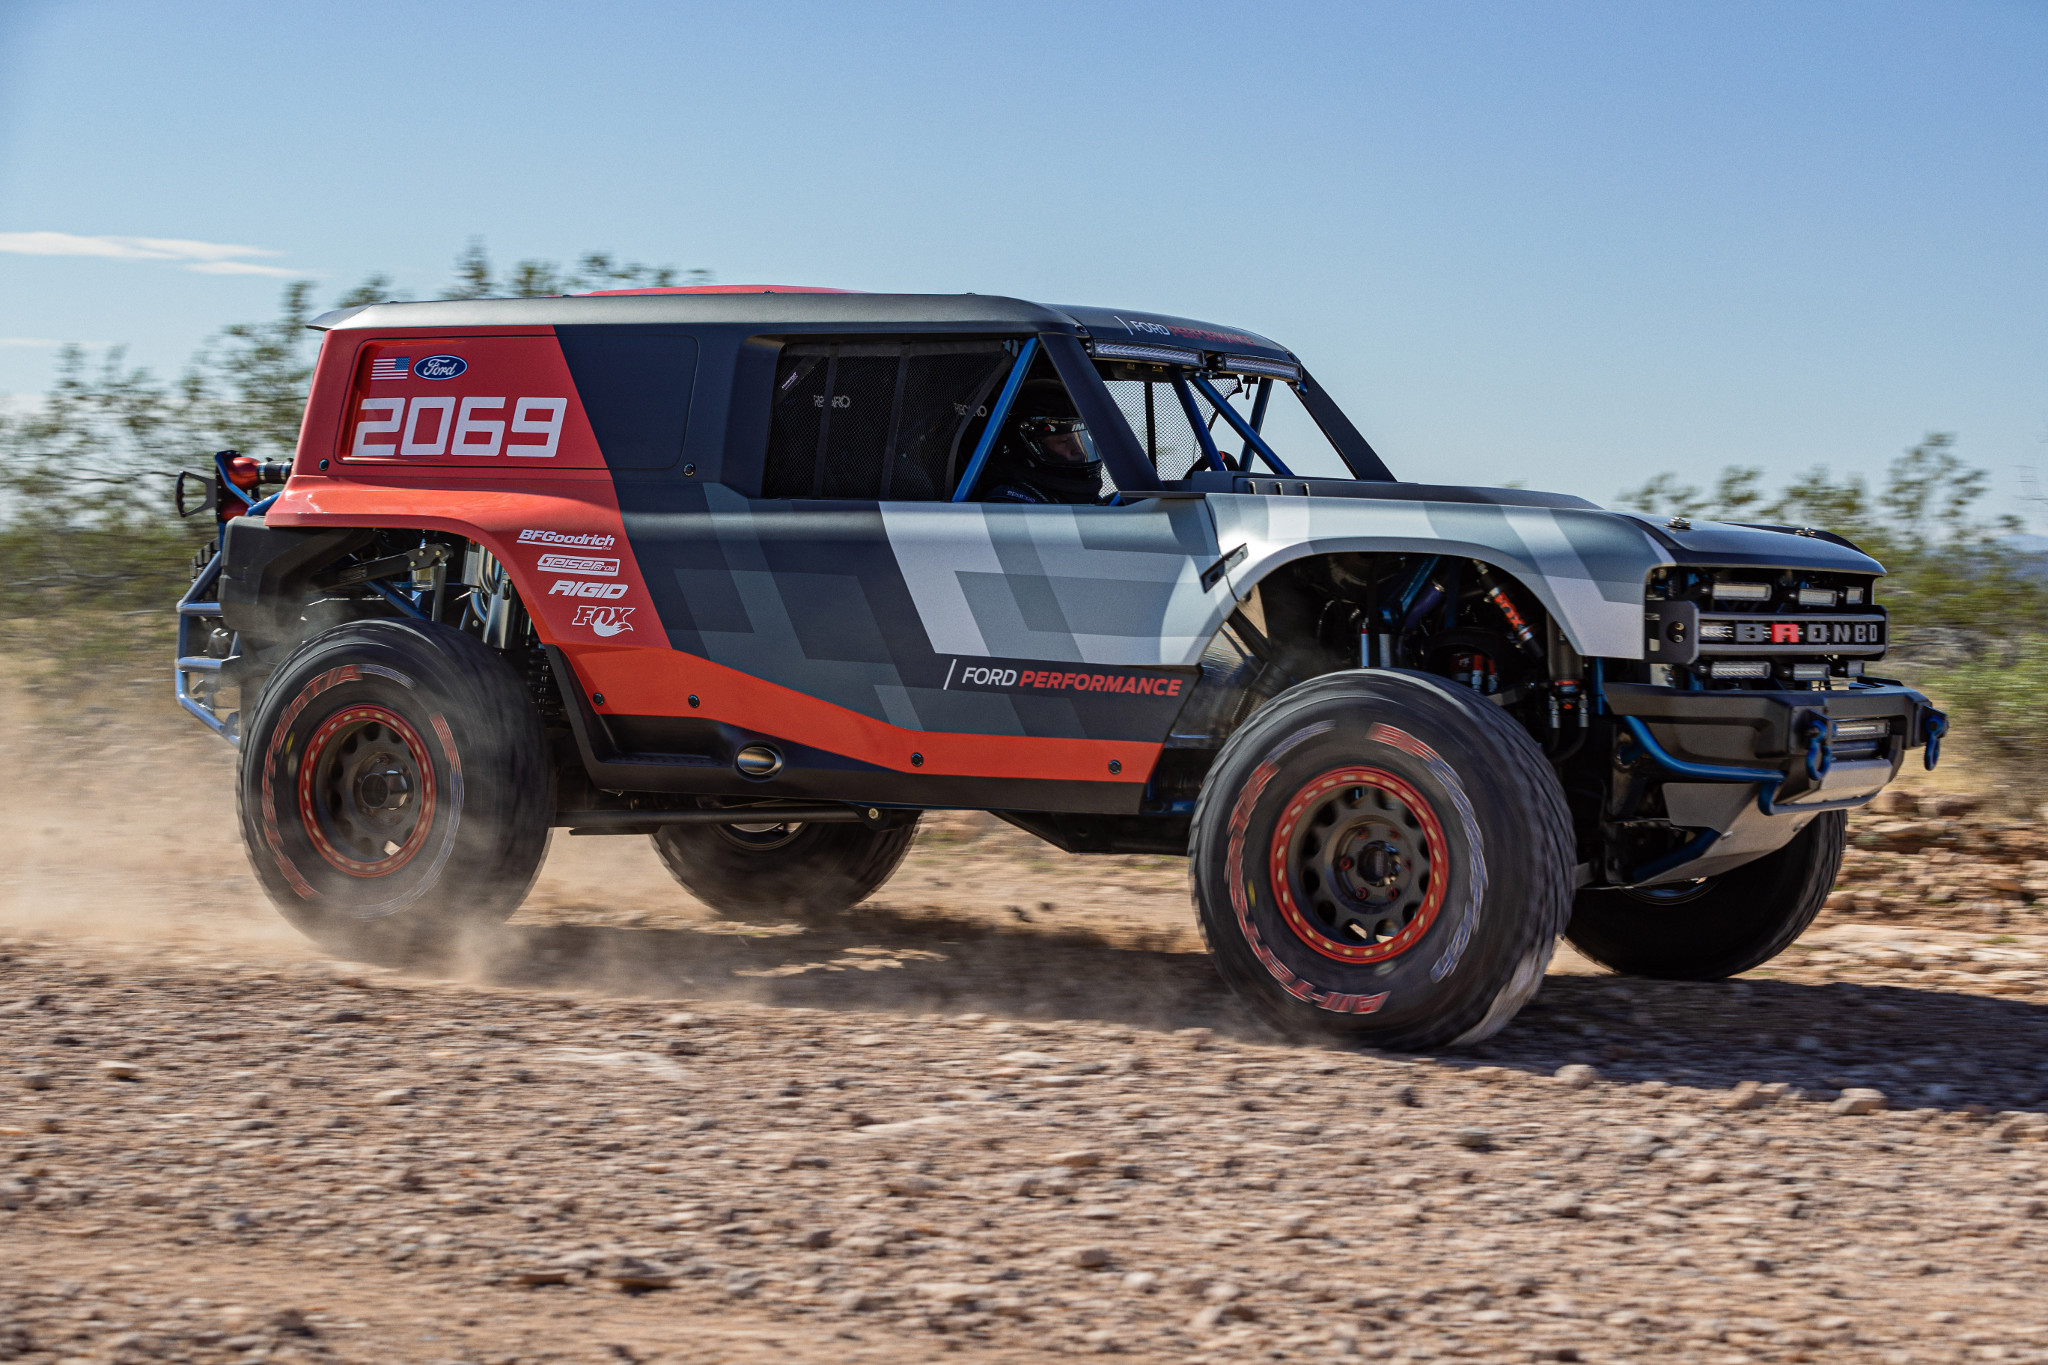 ford-bronco-r-prototype-01-angle--black--desert--dynamic--exterior--front--off-road--red--white.jpg